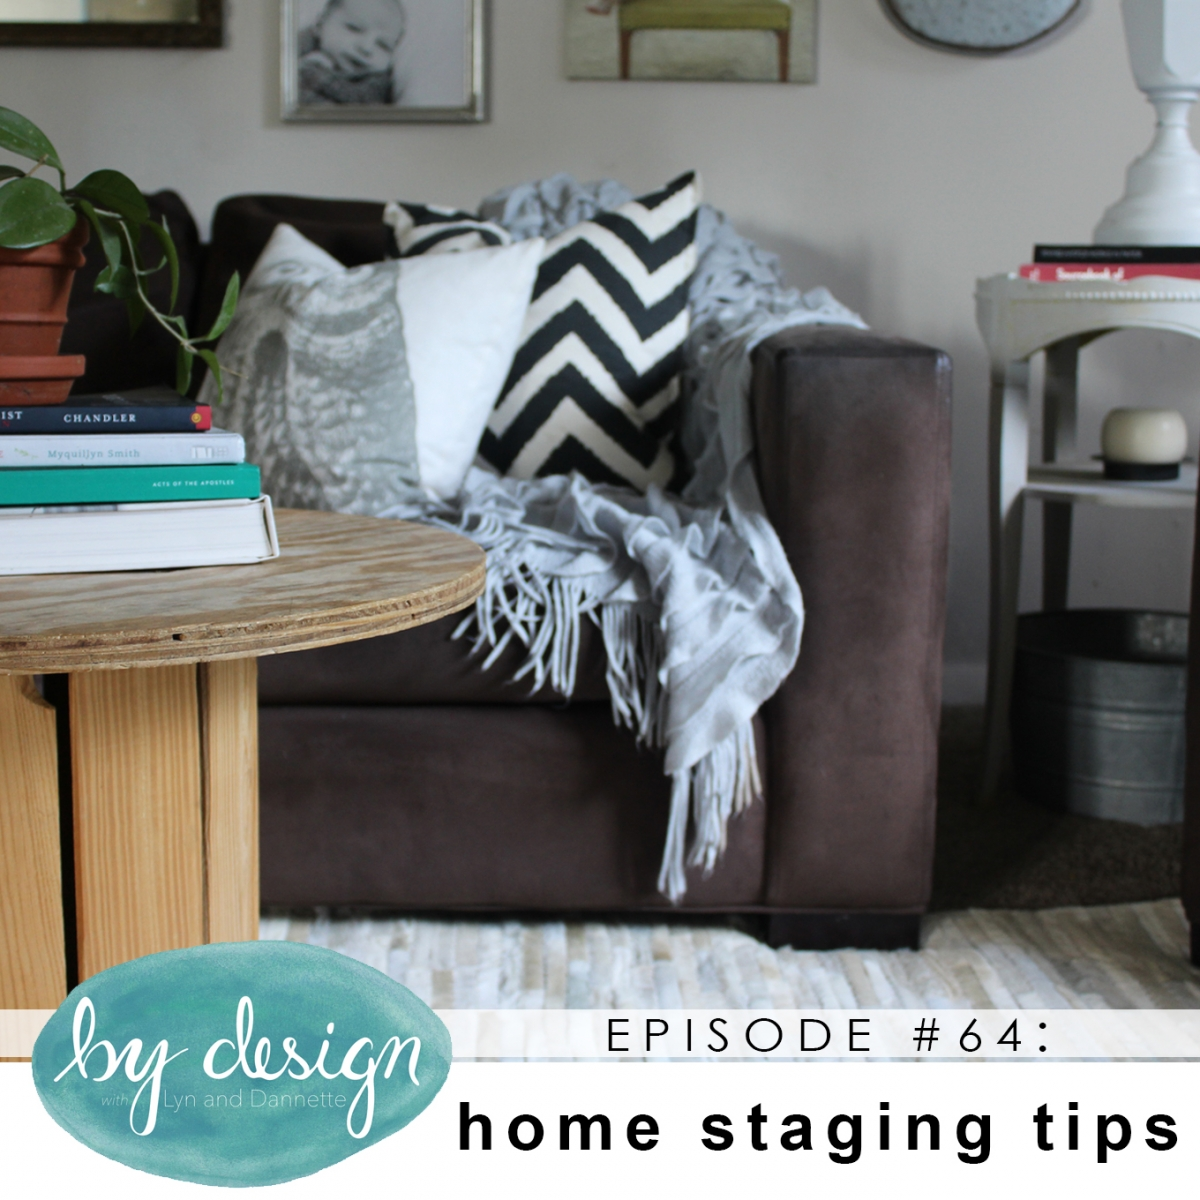 On Todayu0027s Episode Lyn Gives Some Tips For Staging Your Home, And We Share  A Few Guidelines To Help Get You Moving In The Right Direction.